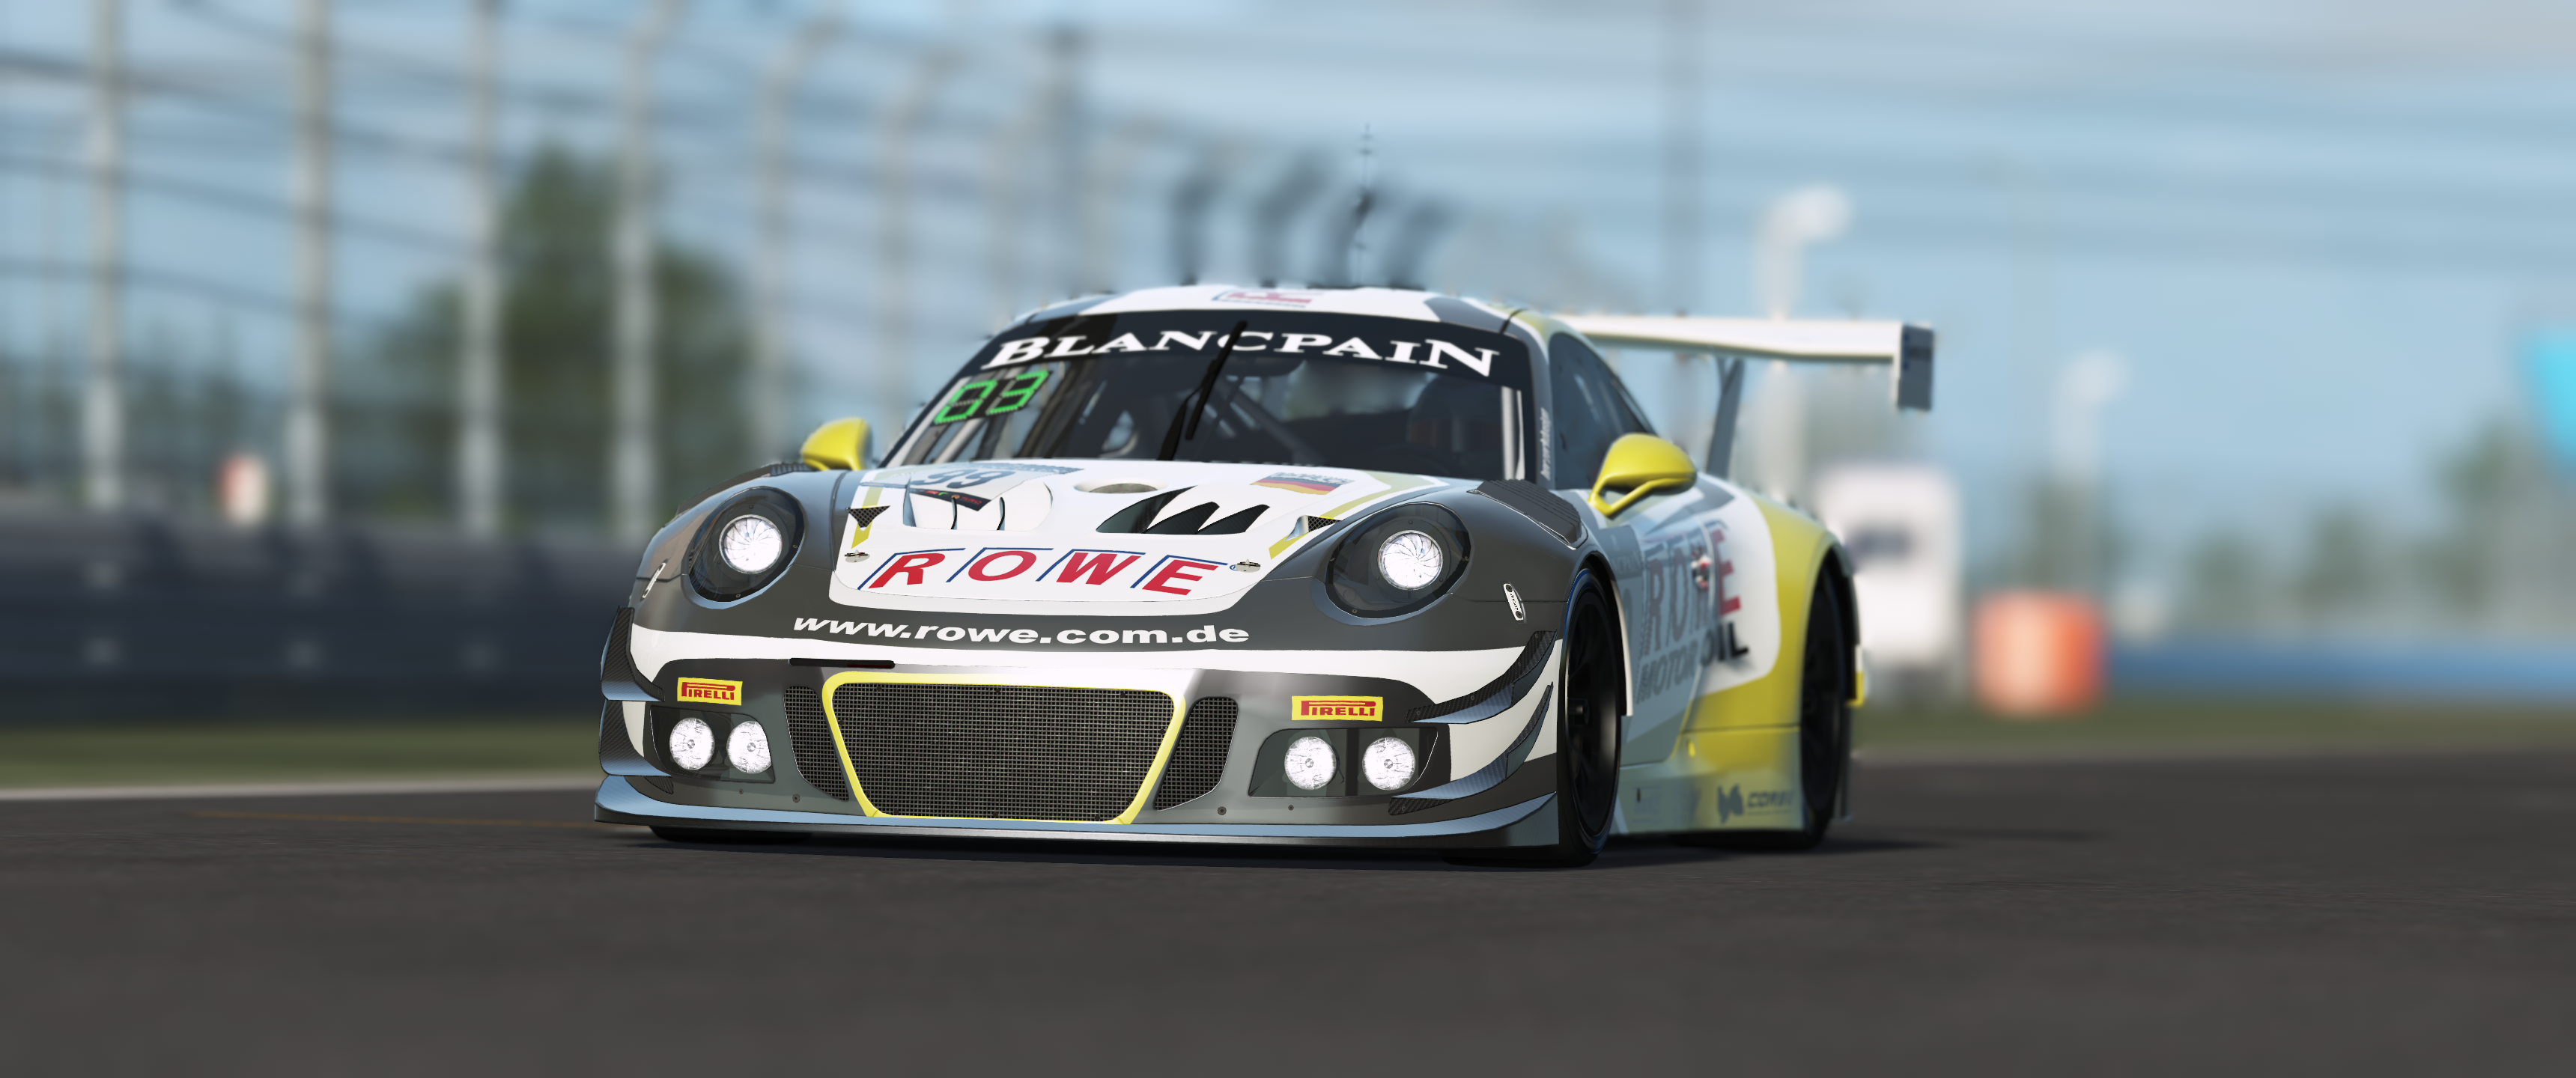 rFactor2 2019-02-27 16-59-39-47.png